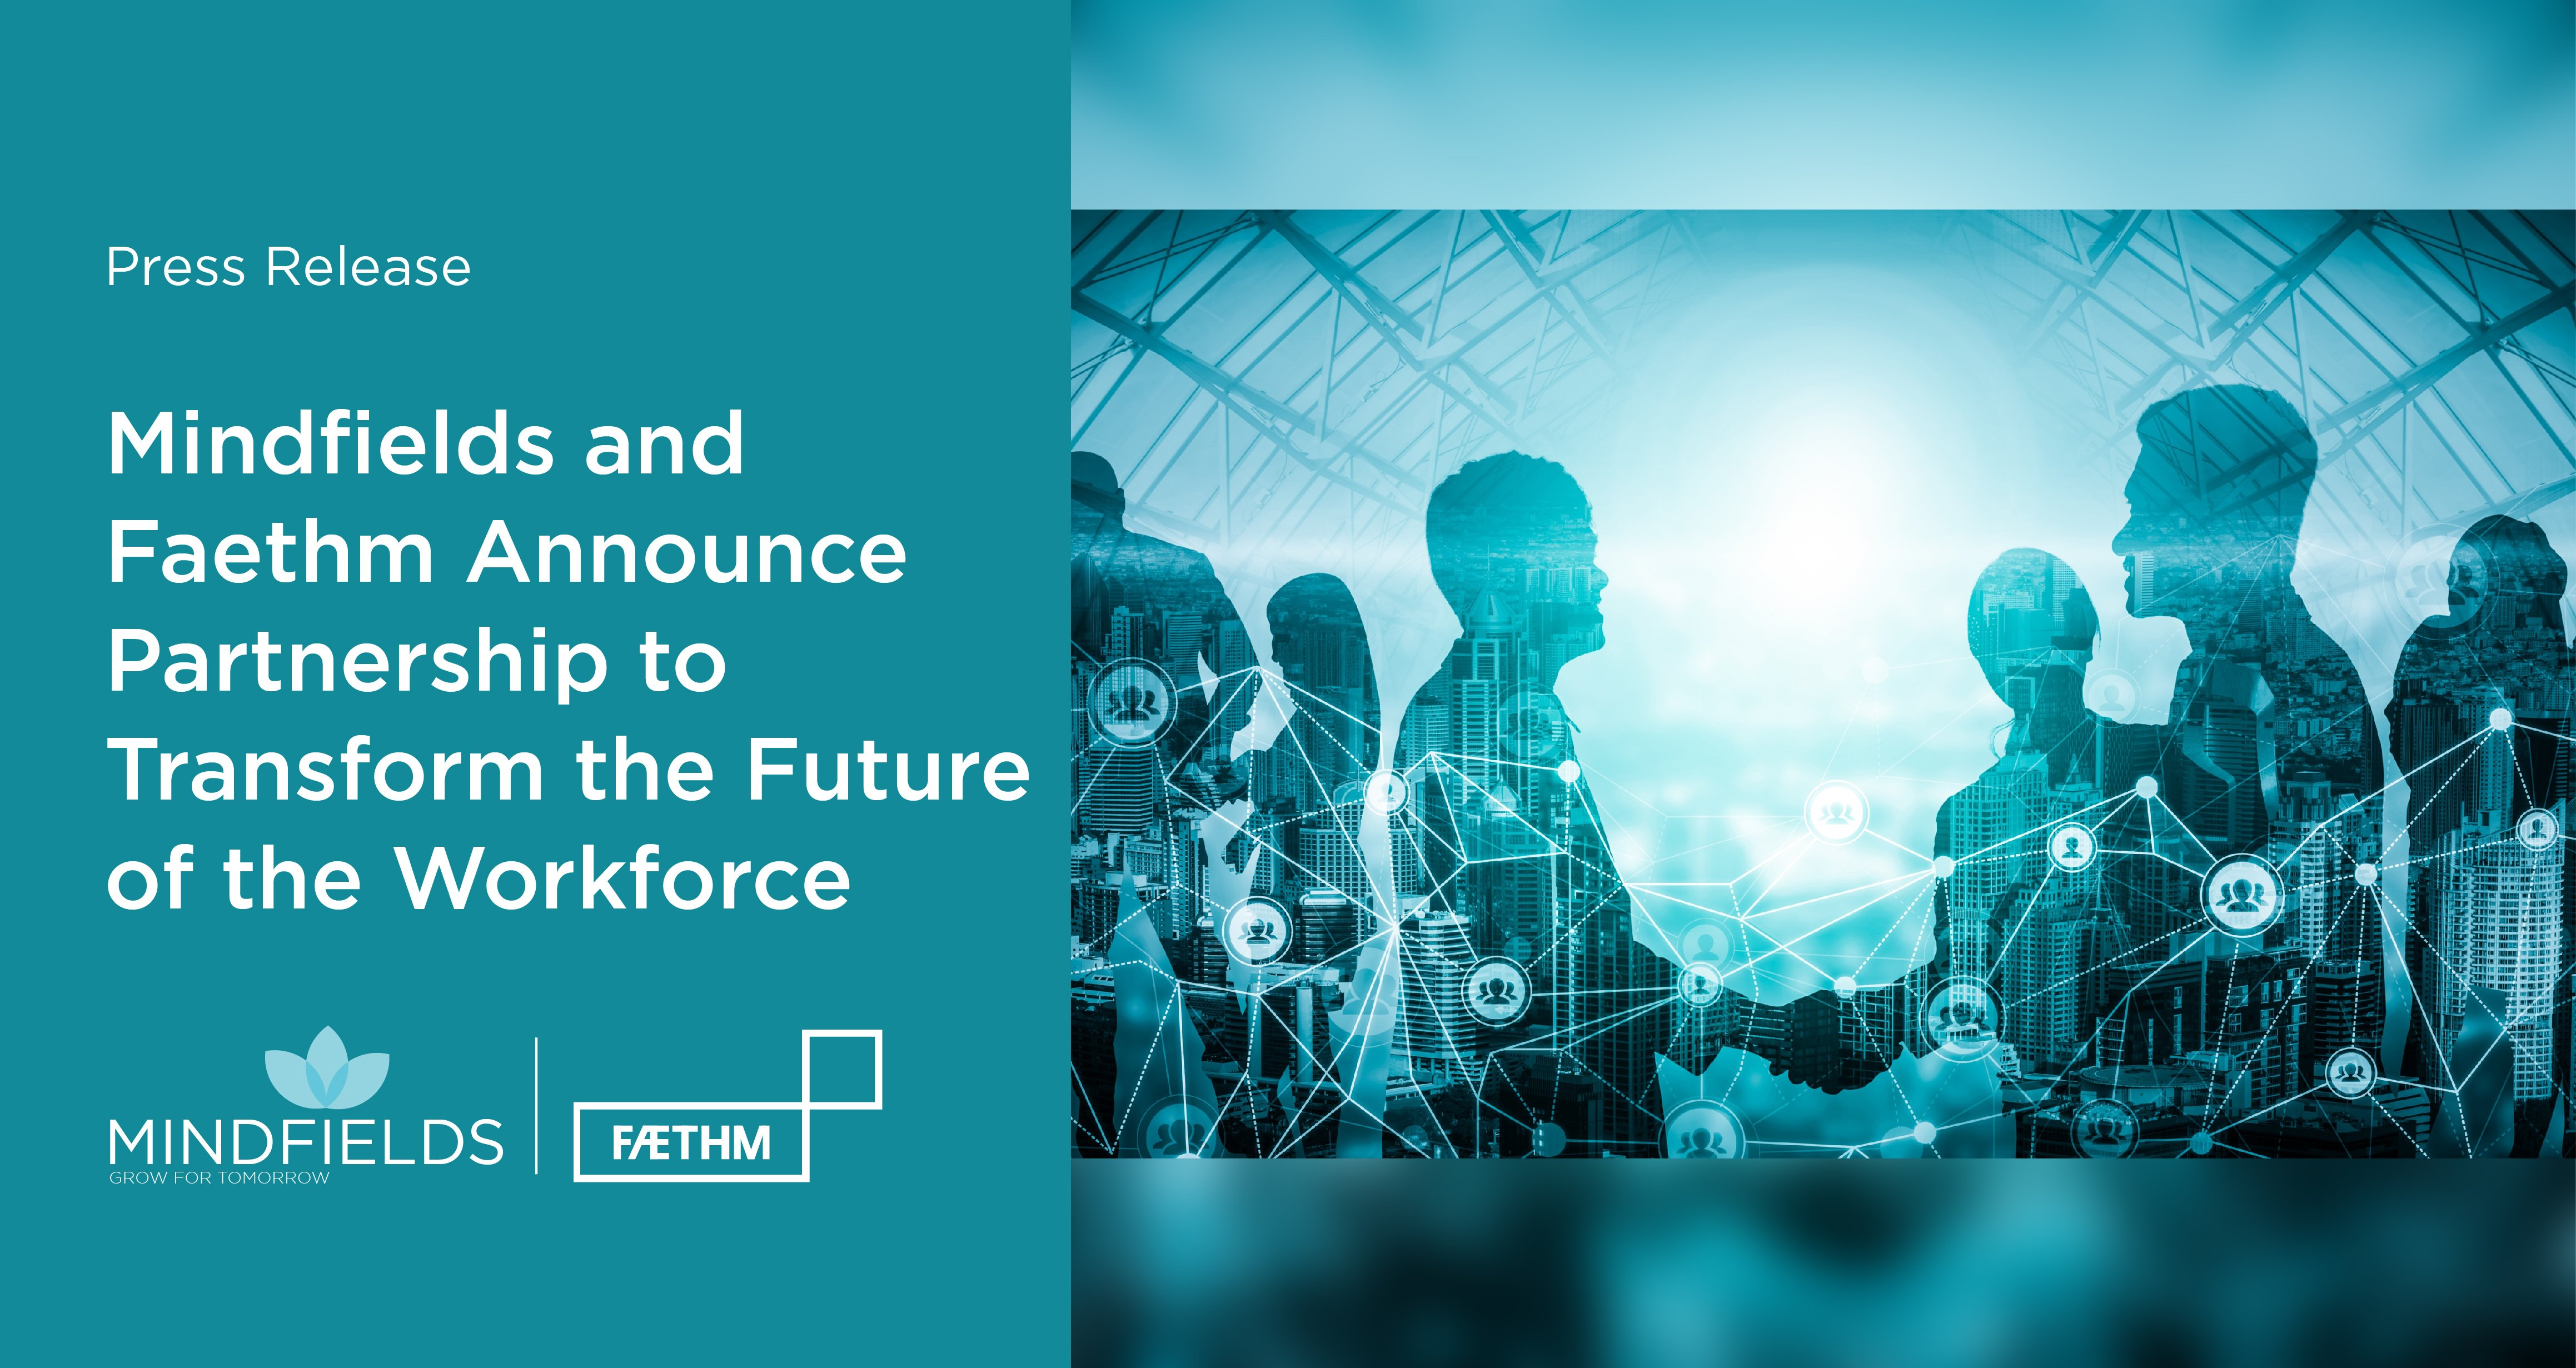 Mindfields and Faethm announce partnership to transform the future of the workforce